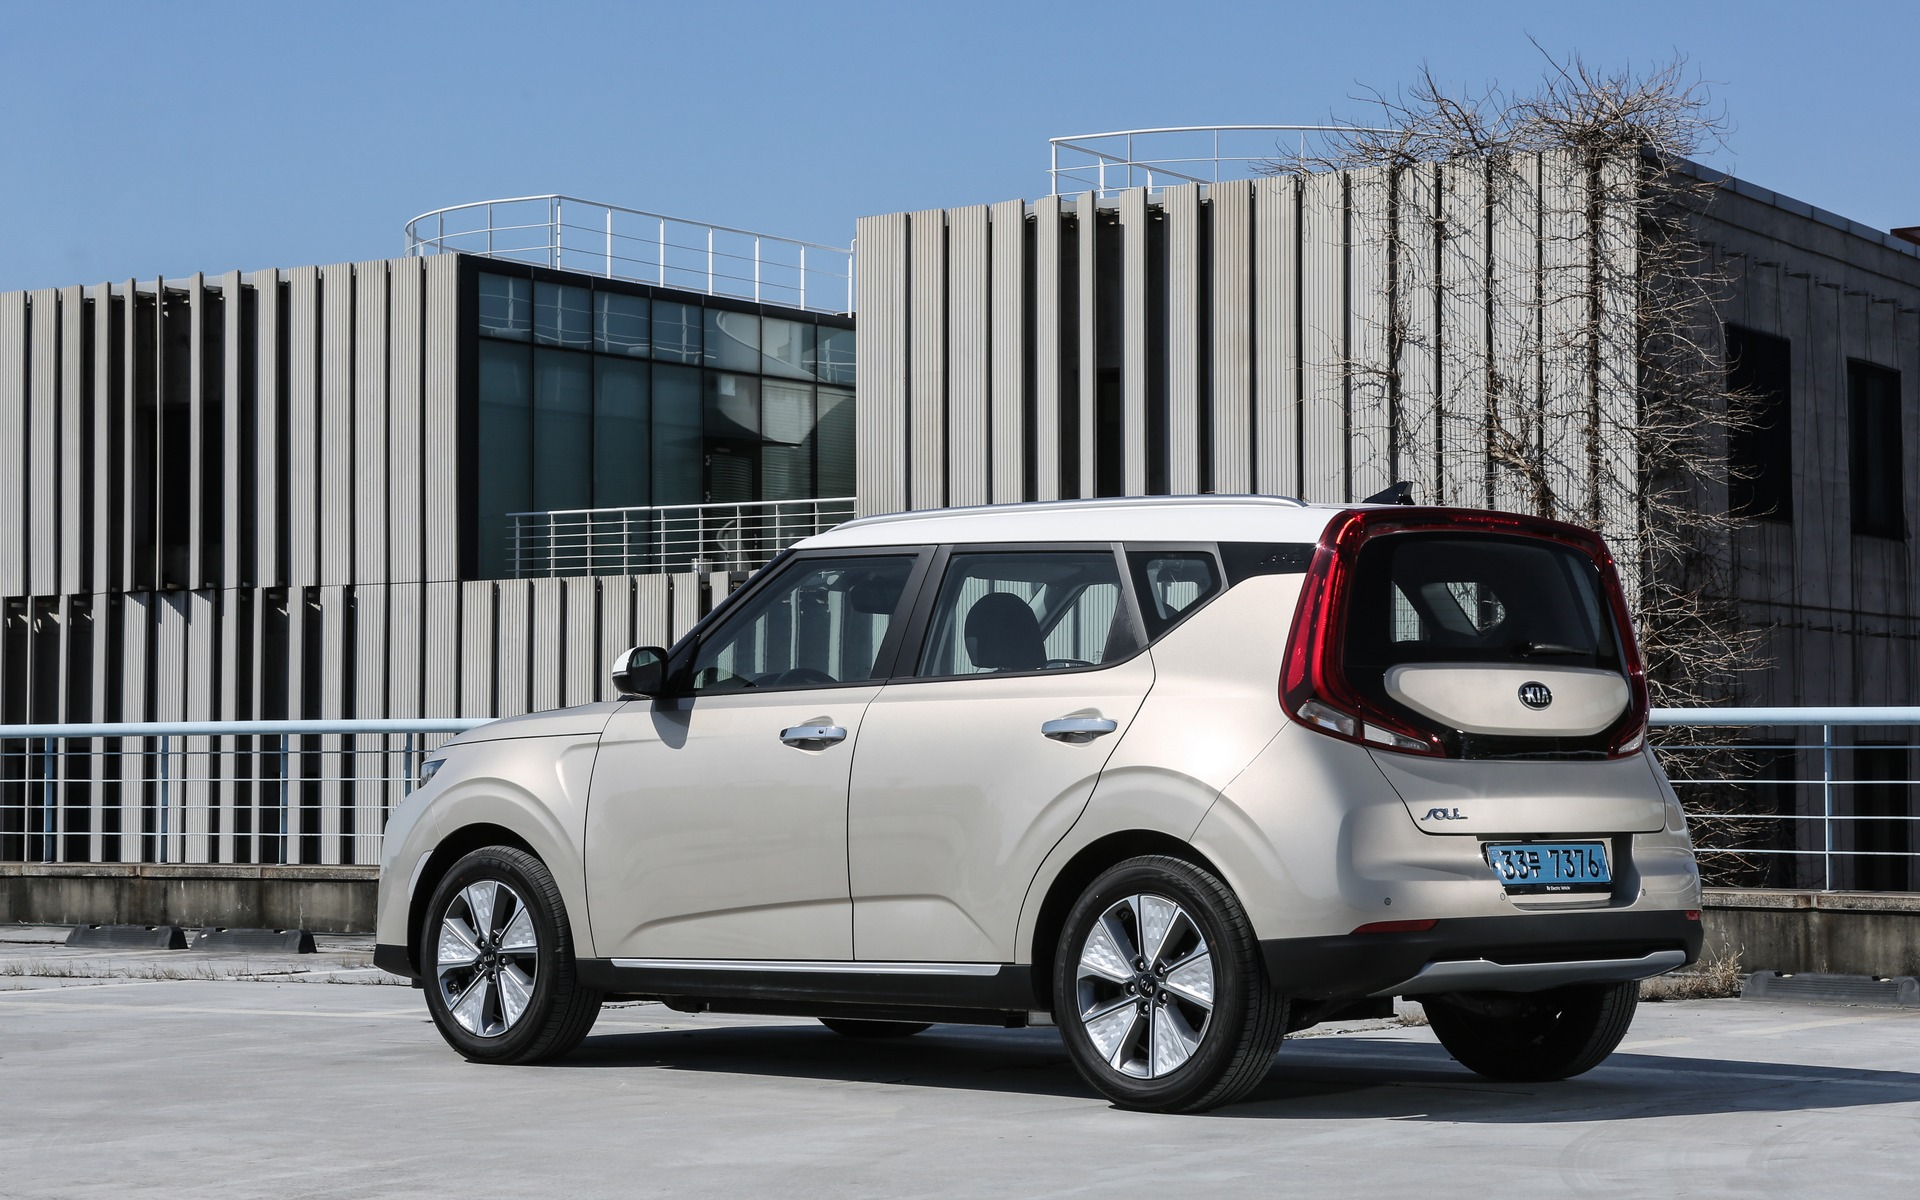 2020 Kia Soul EV: No More Range Anxiety - The Car Guide